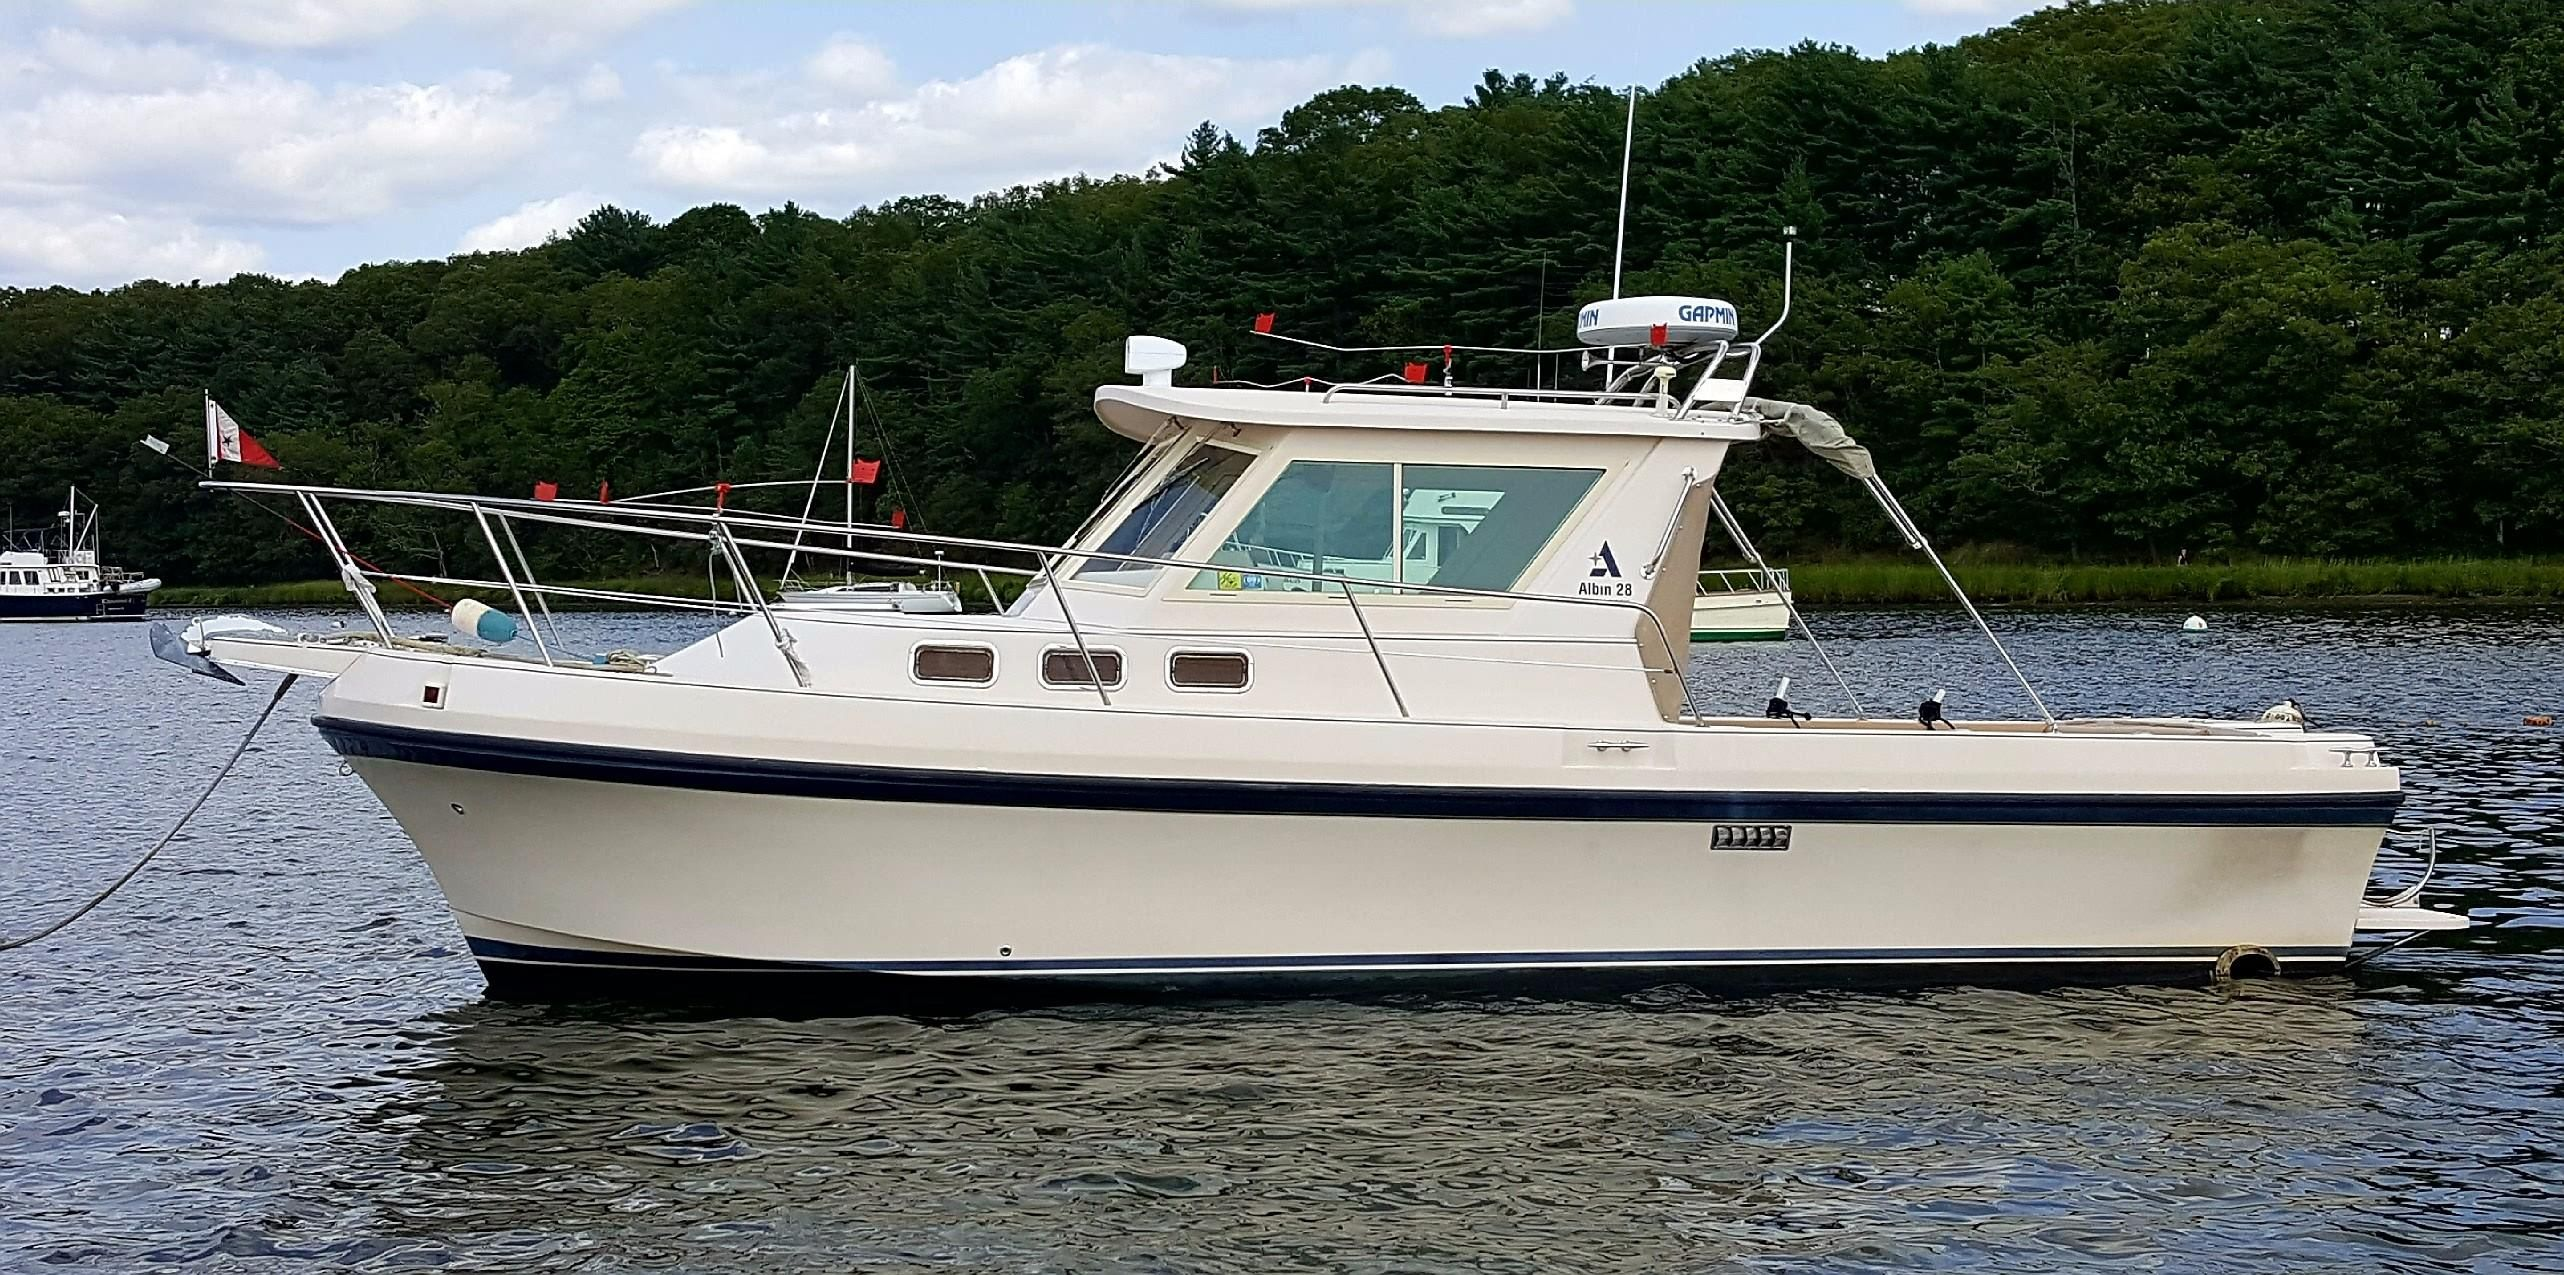 2004 Albin 28 Tournament Express Power Boat For Sale Www